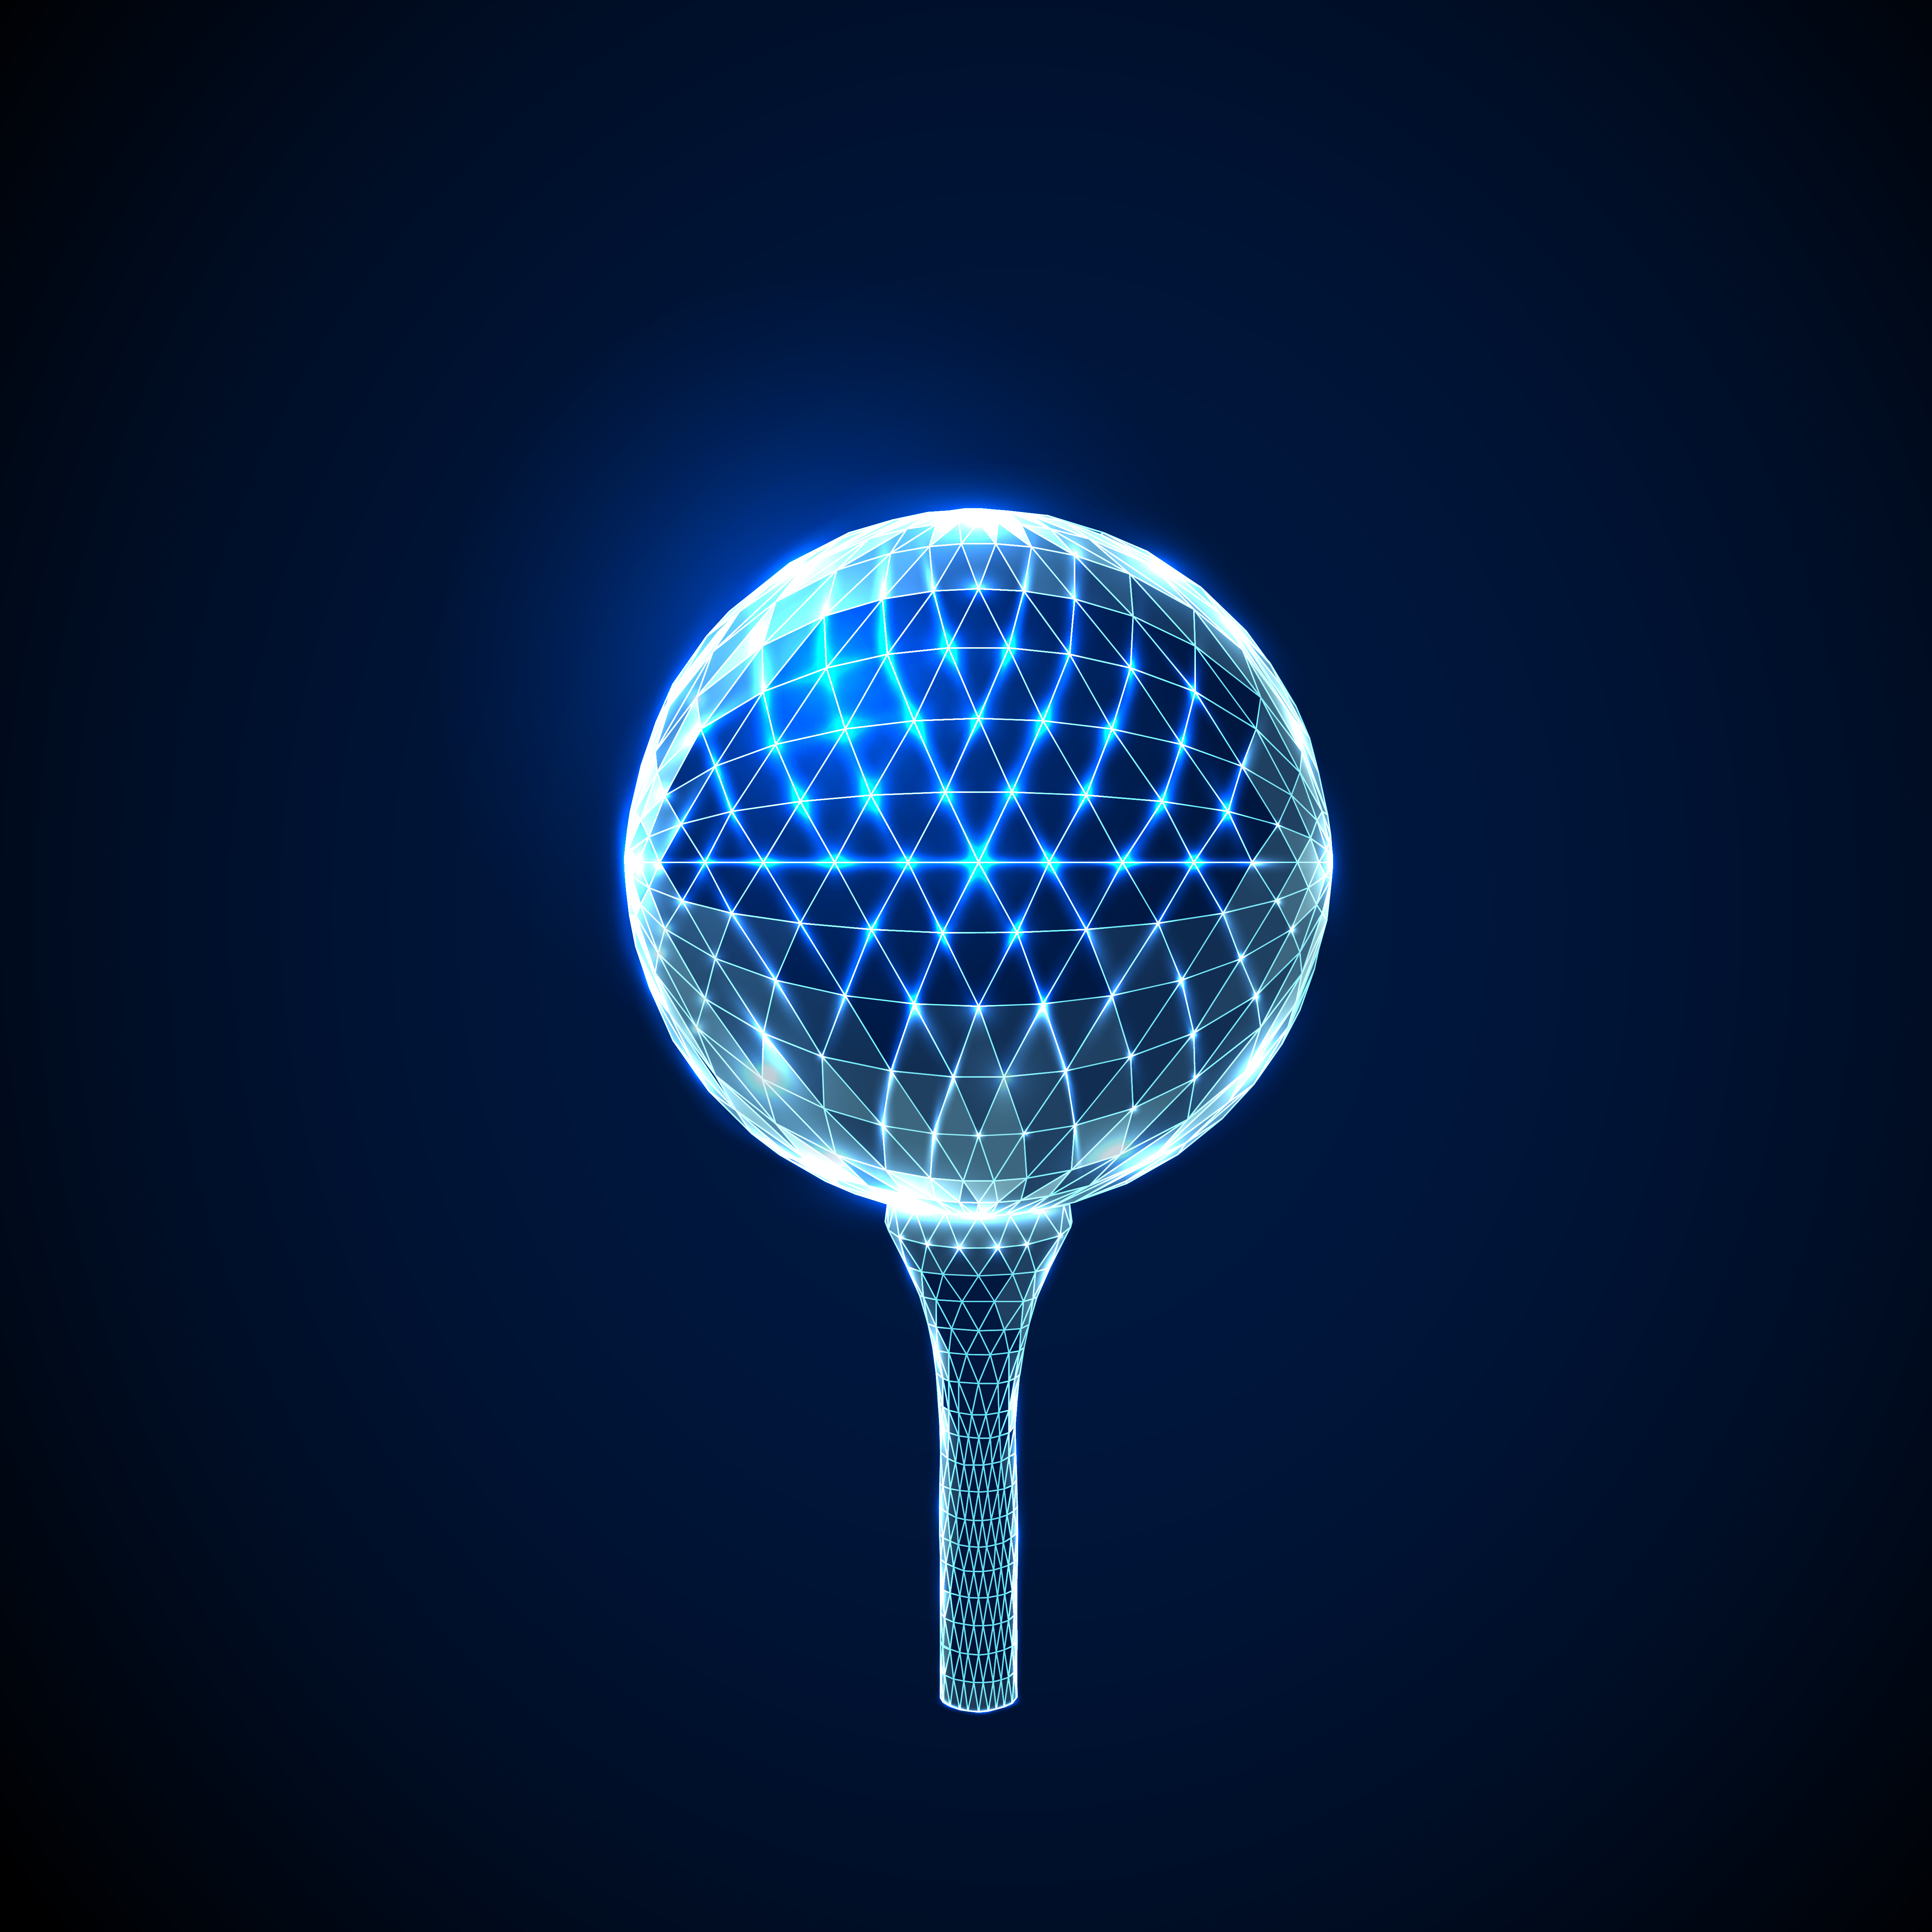 Abstract Golf Ball. Low Polygonal Style Design.